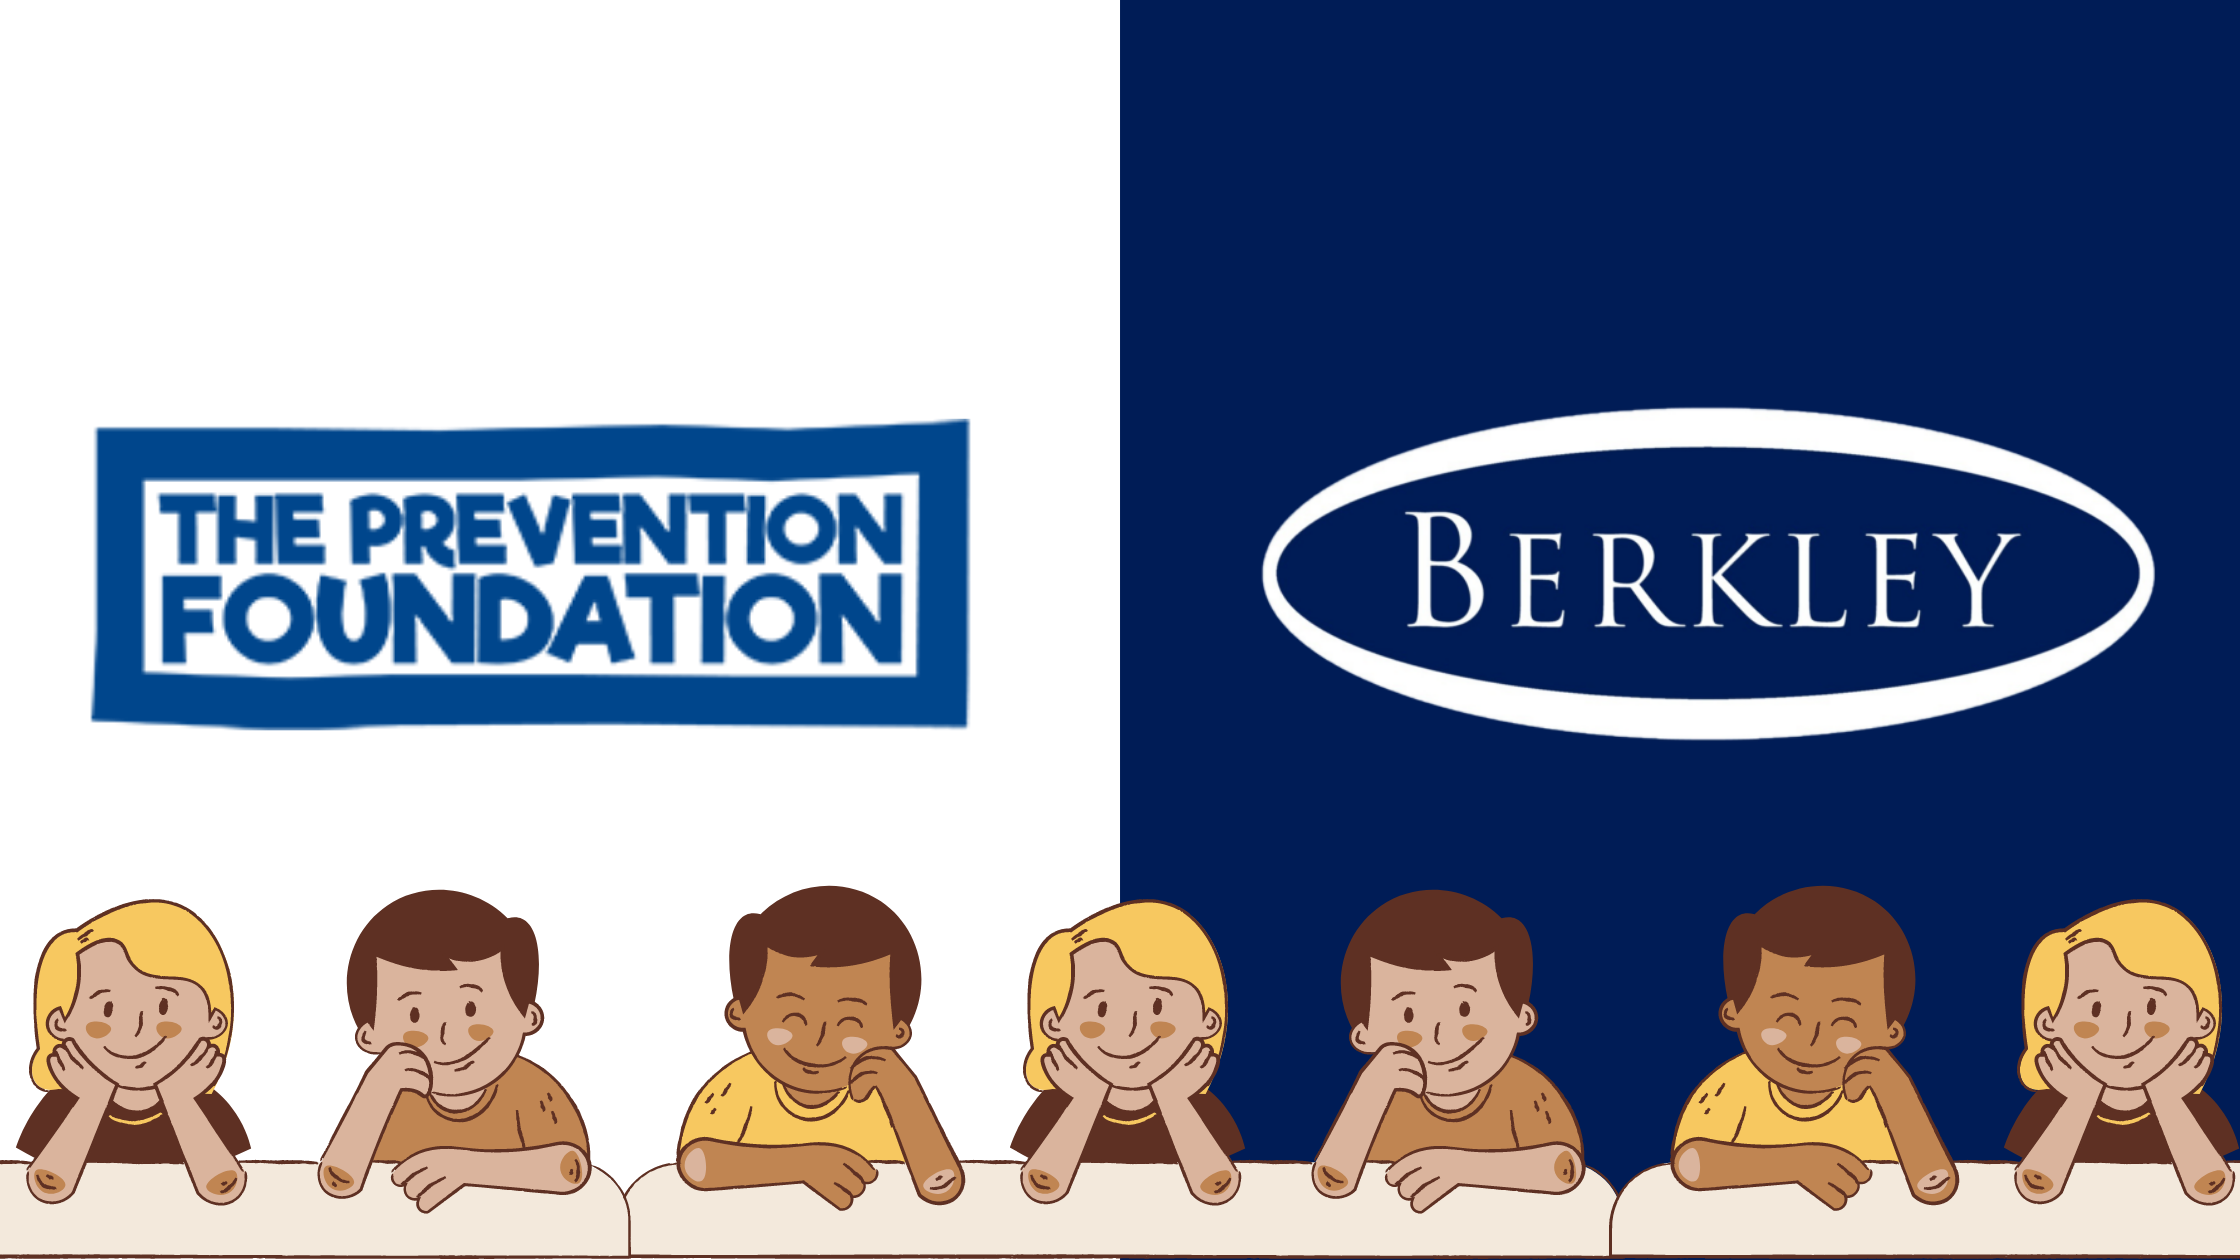 Berkley Estate & Letting Agents team up with the Prevention Foundation